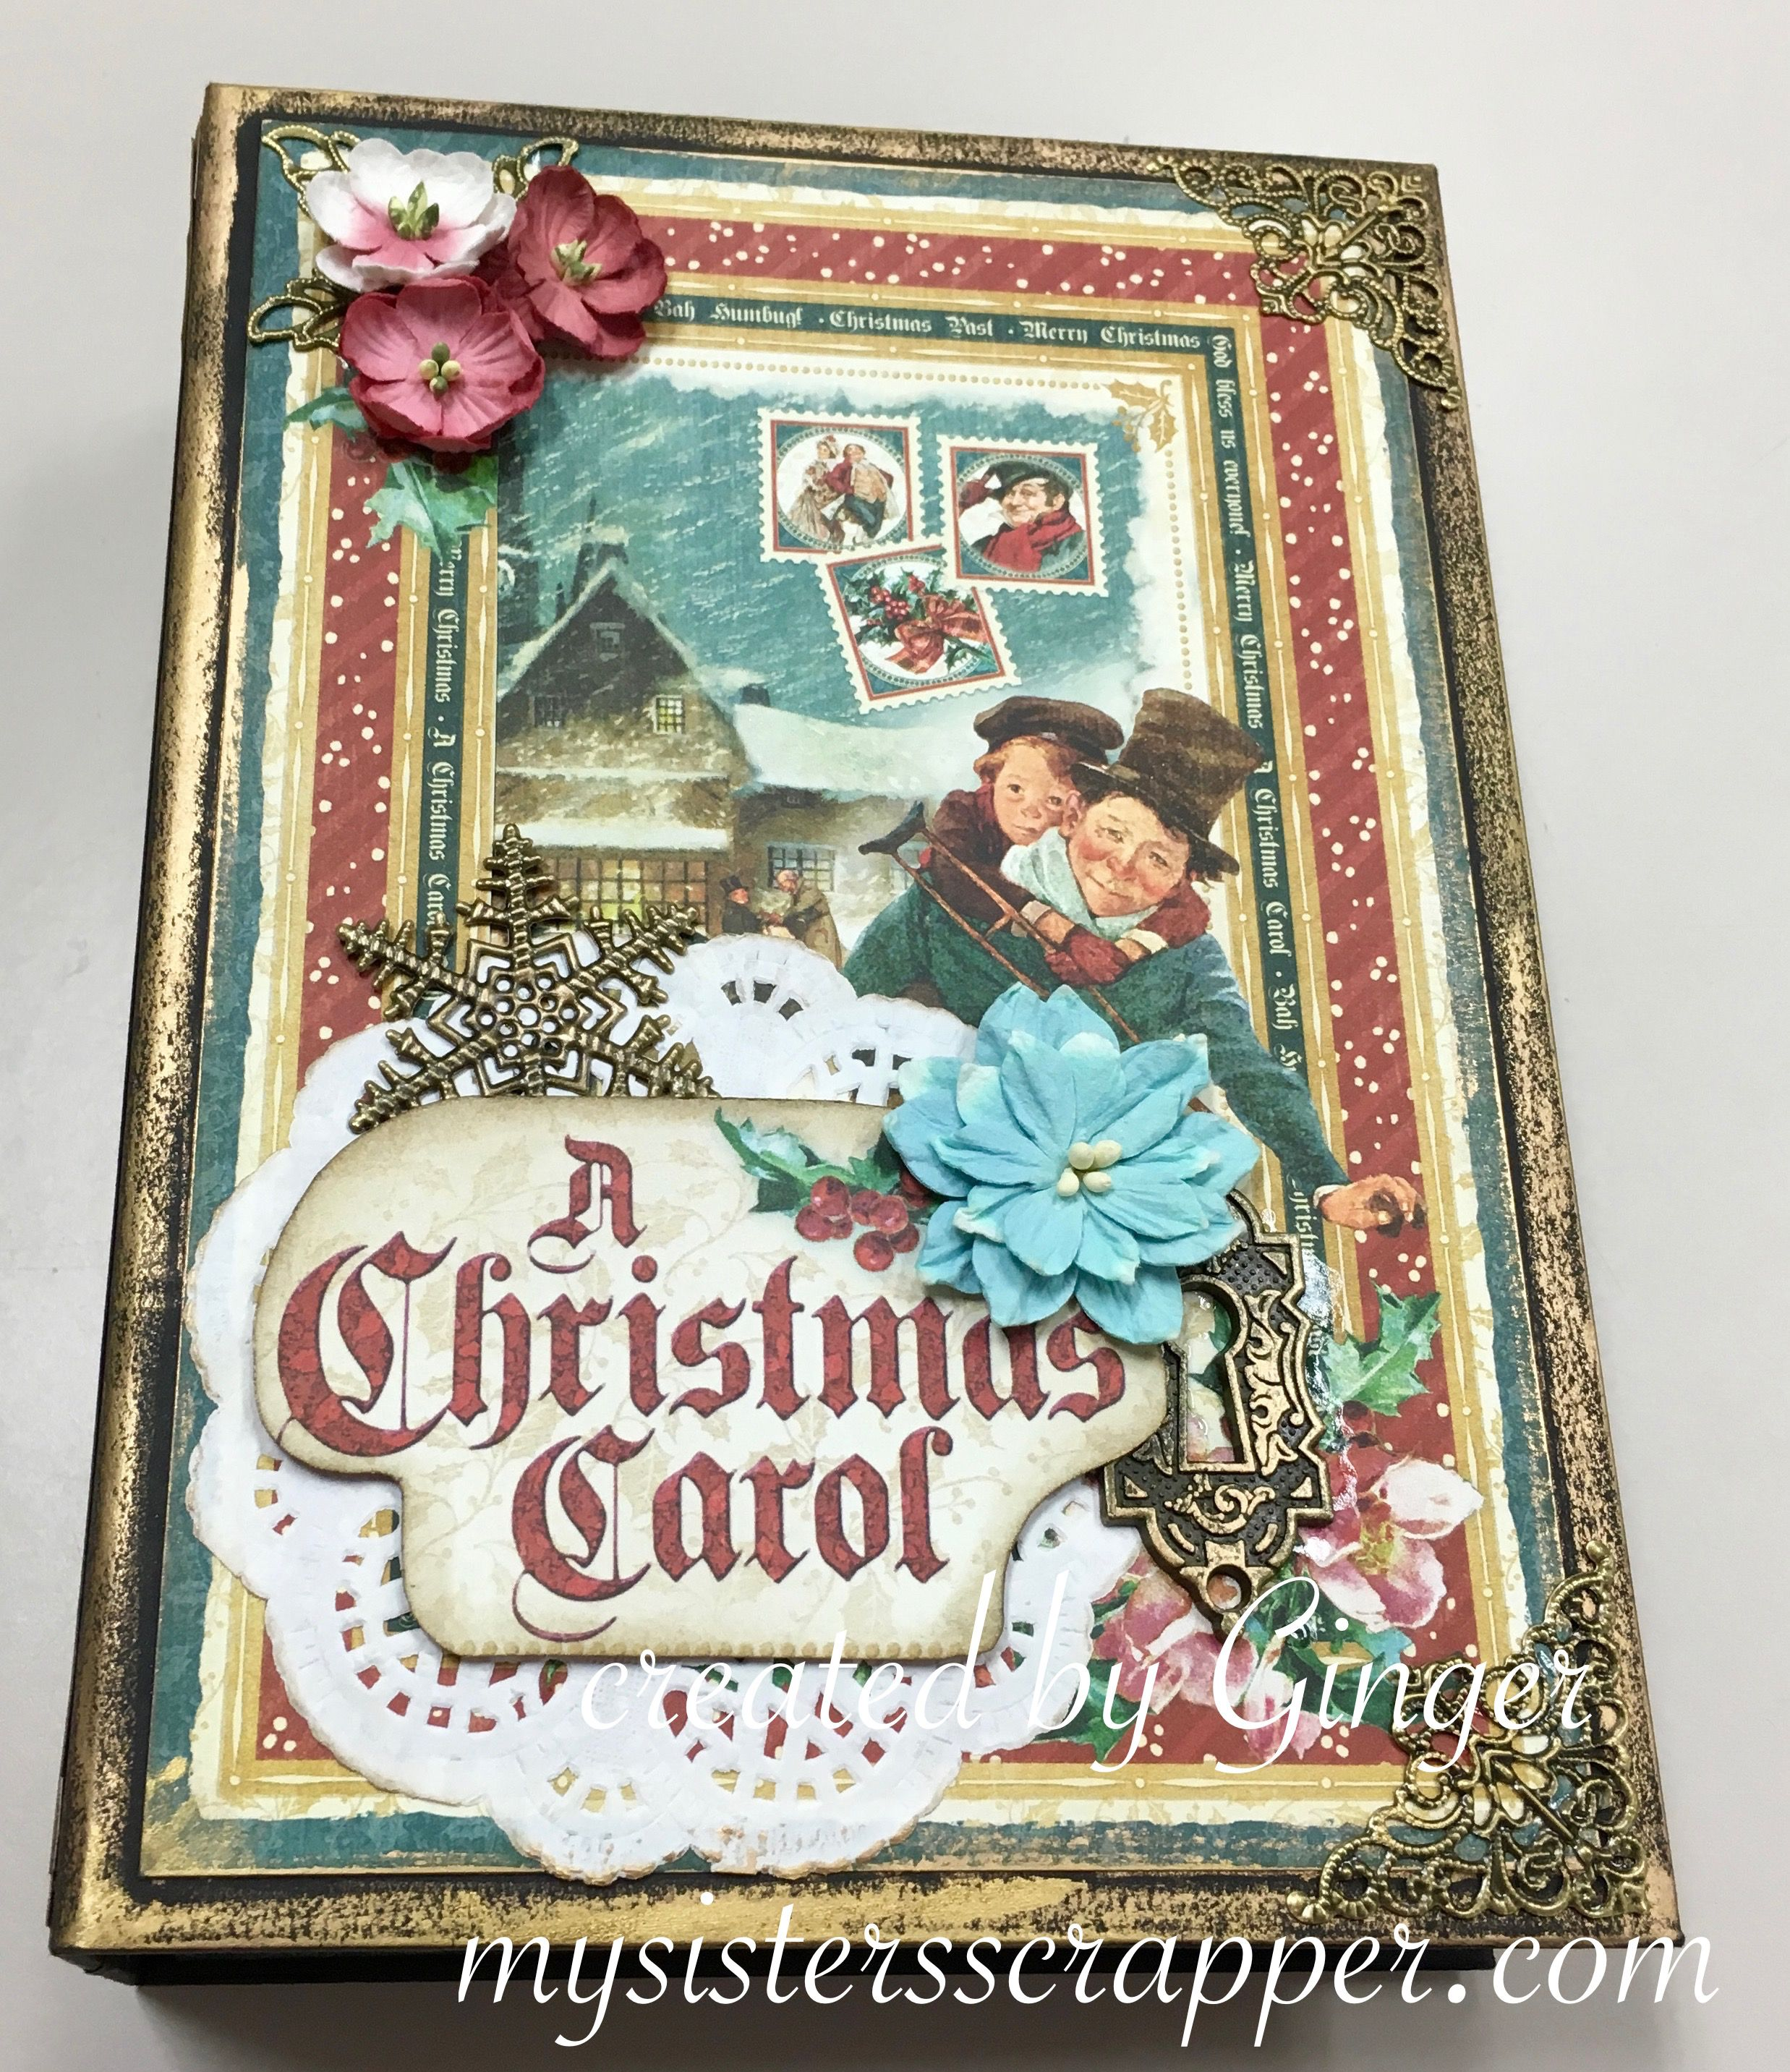 BBS Christmas Carol Mini Album Front Cover